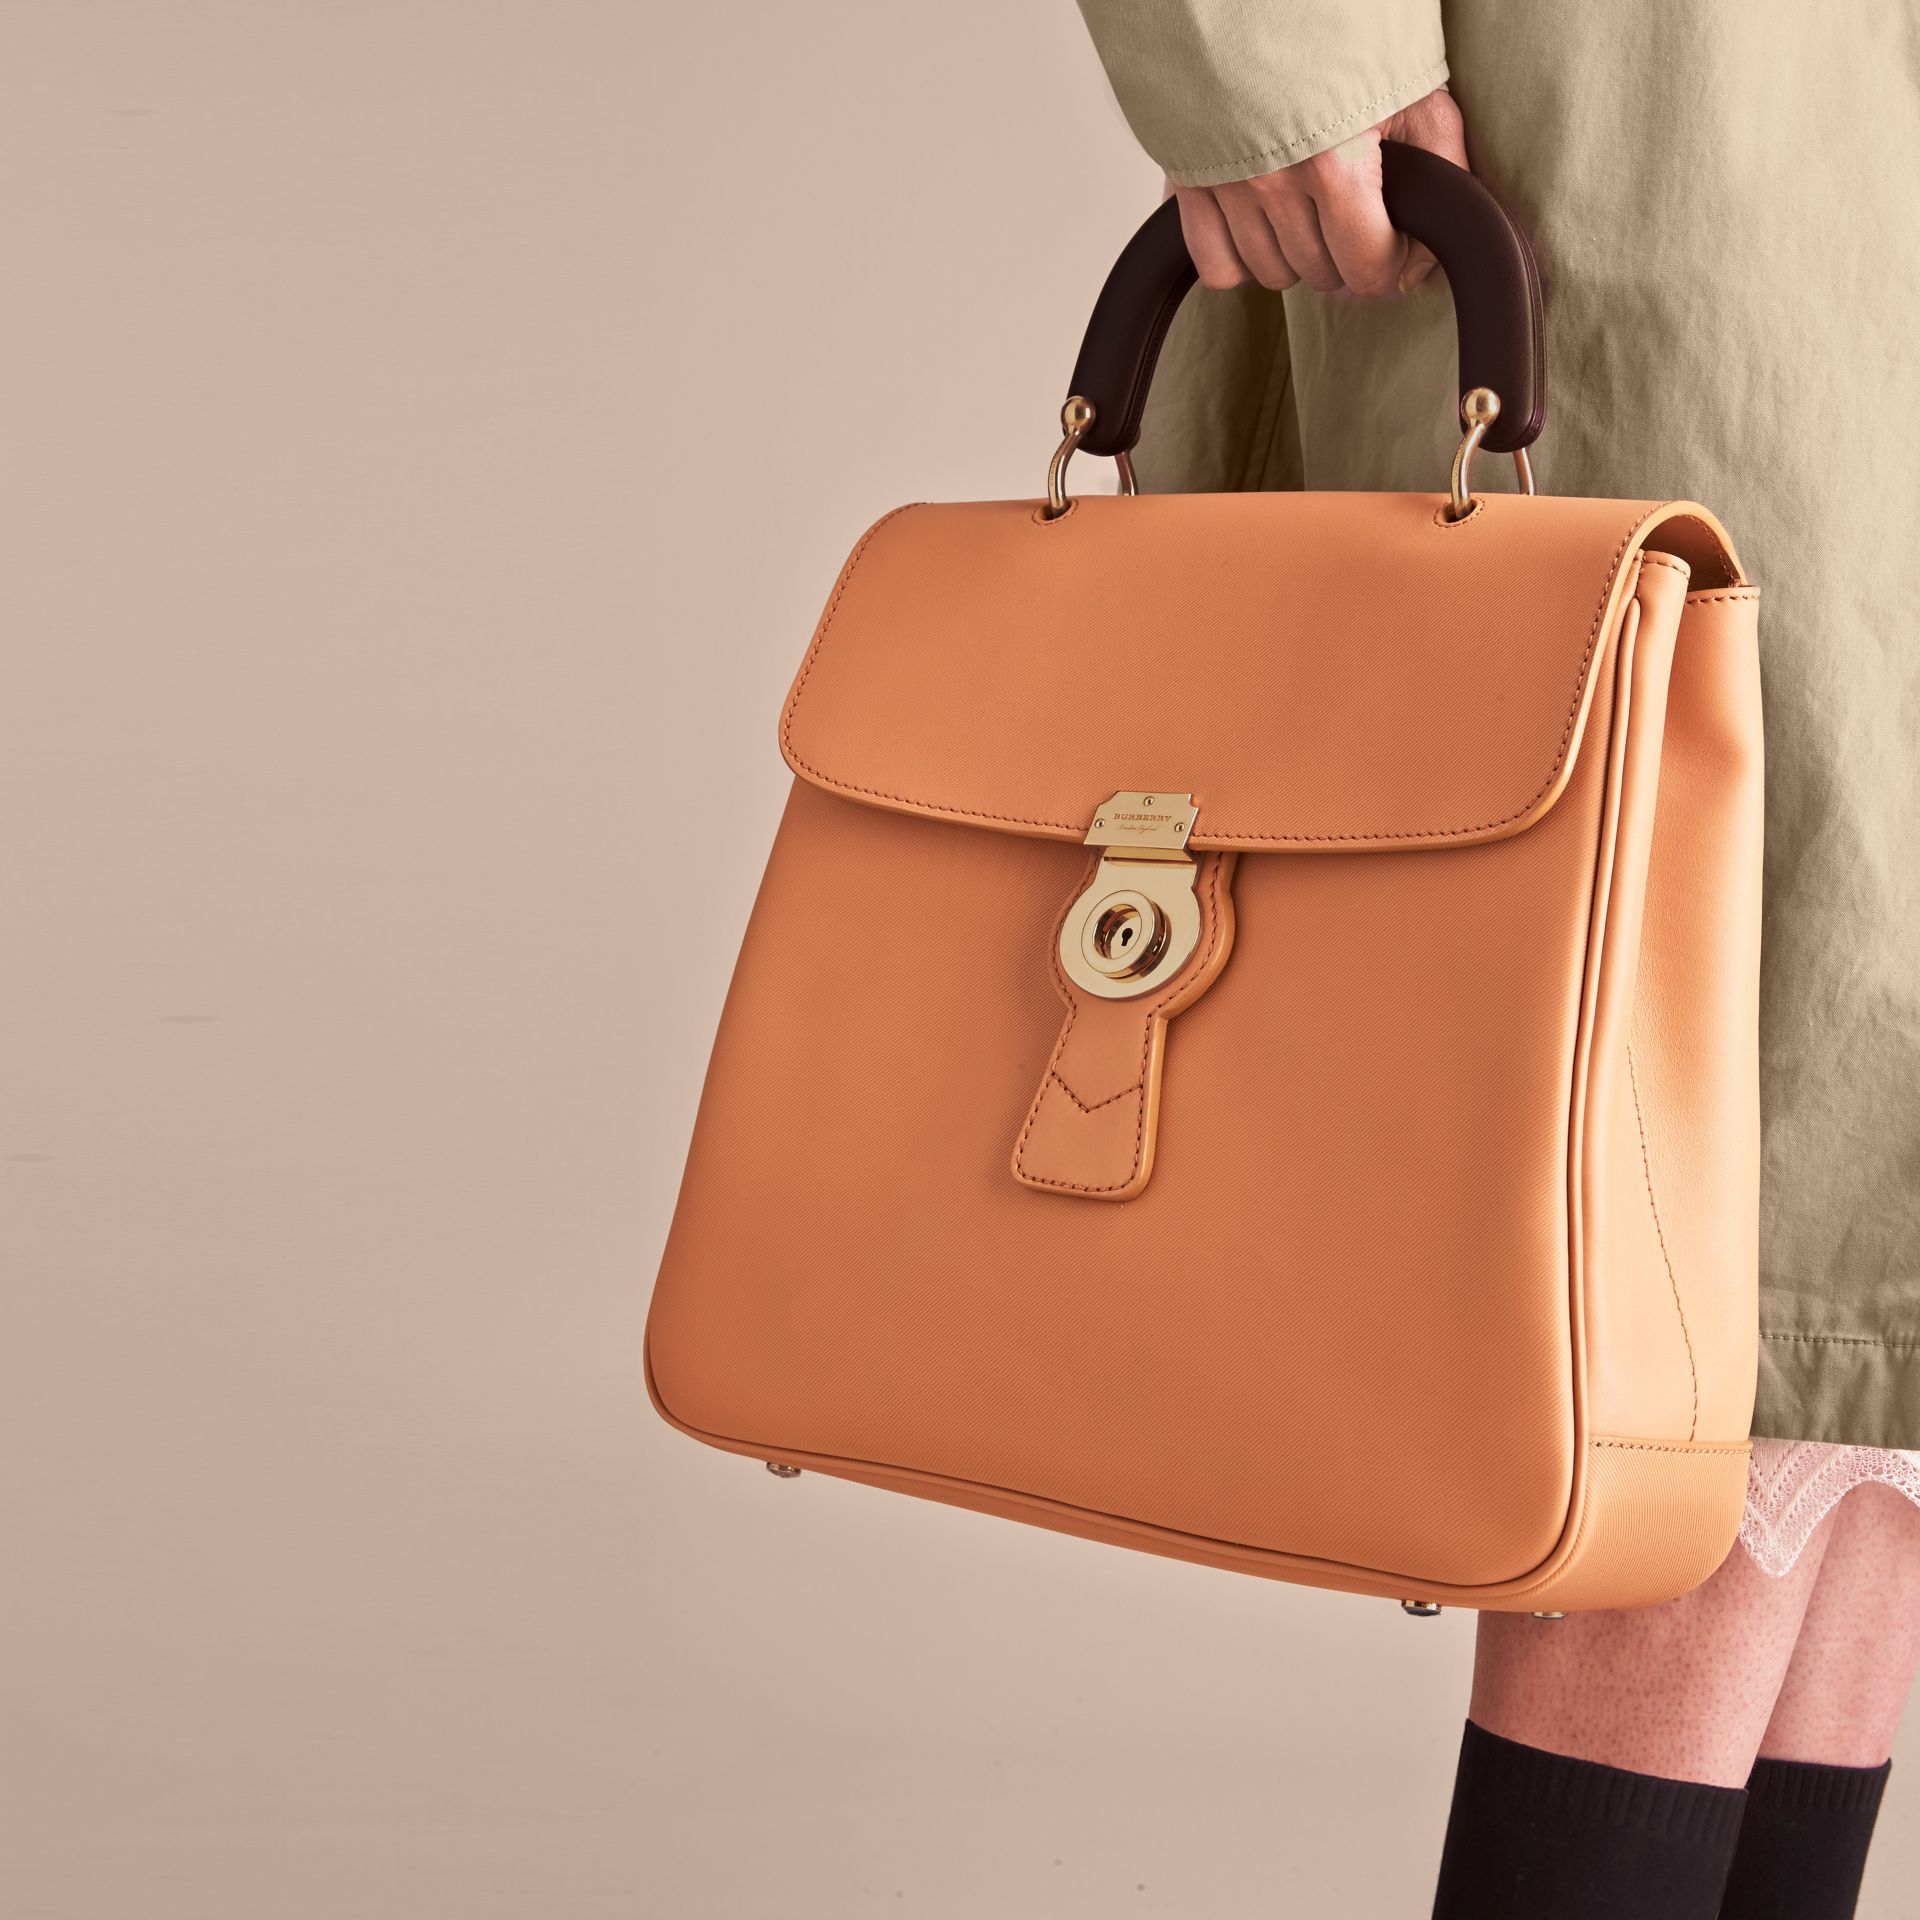 The Large DK88 Top Handle Bag in Pale Clementine - Women | Burberry Australia - gallery image 7